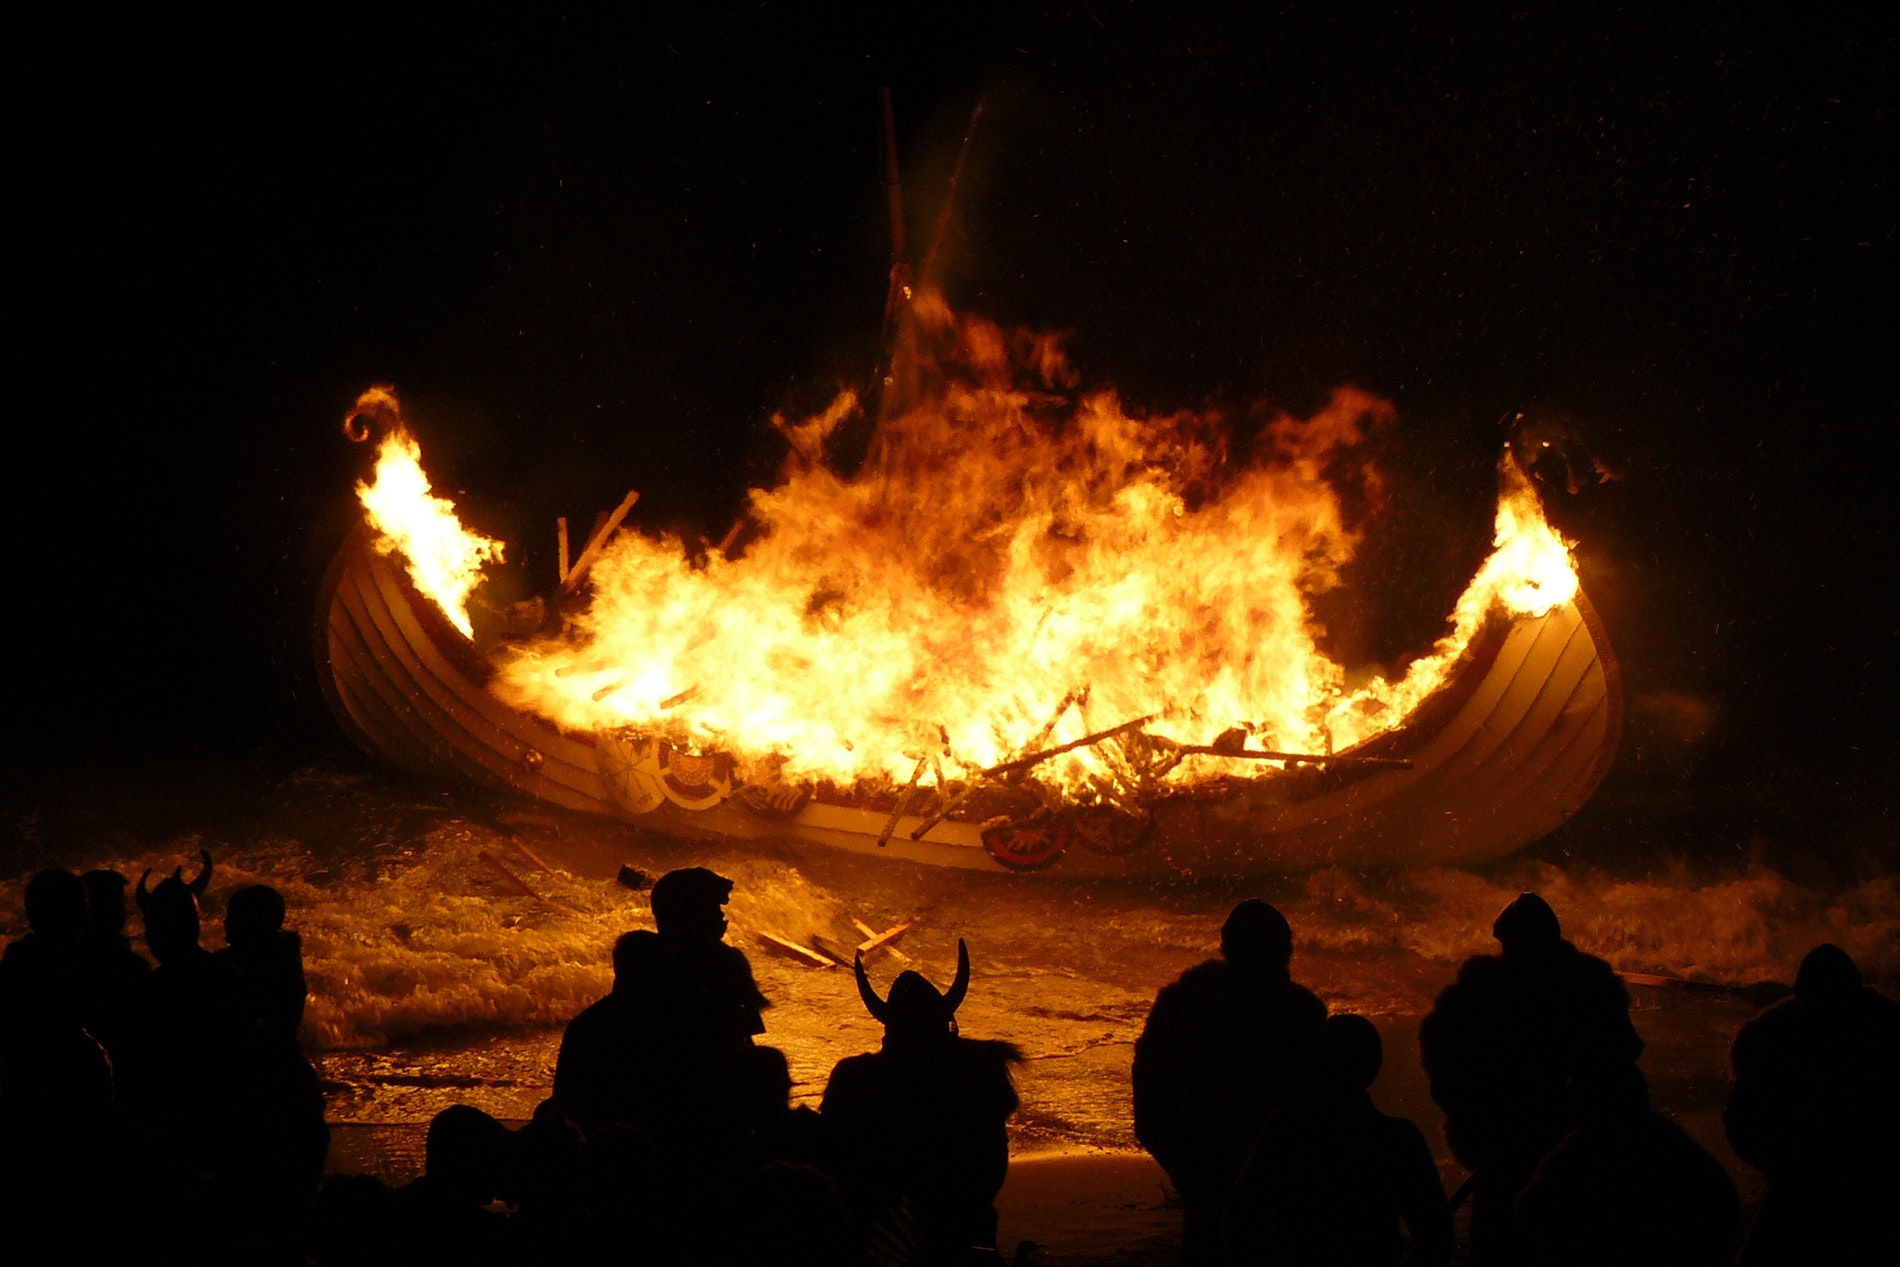 The torch-lit procession culminates in the burning of a life-size Viking ship replica.